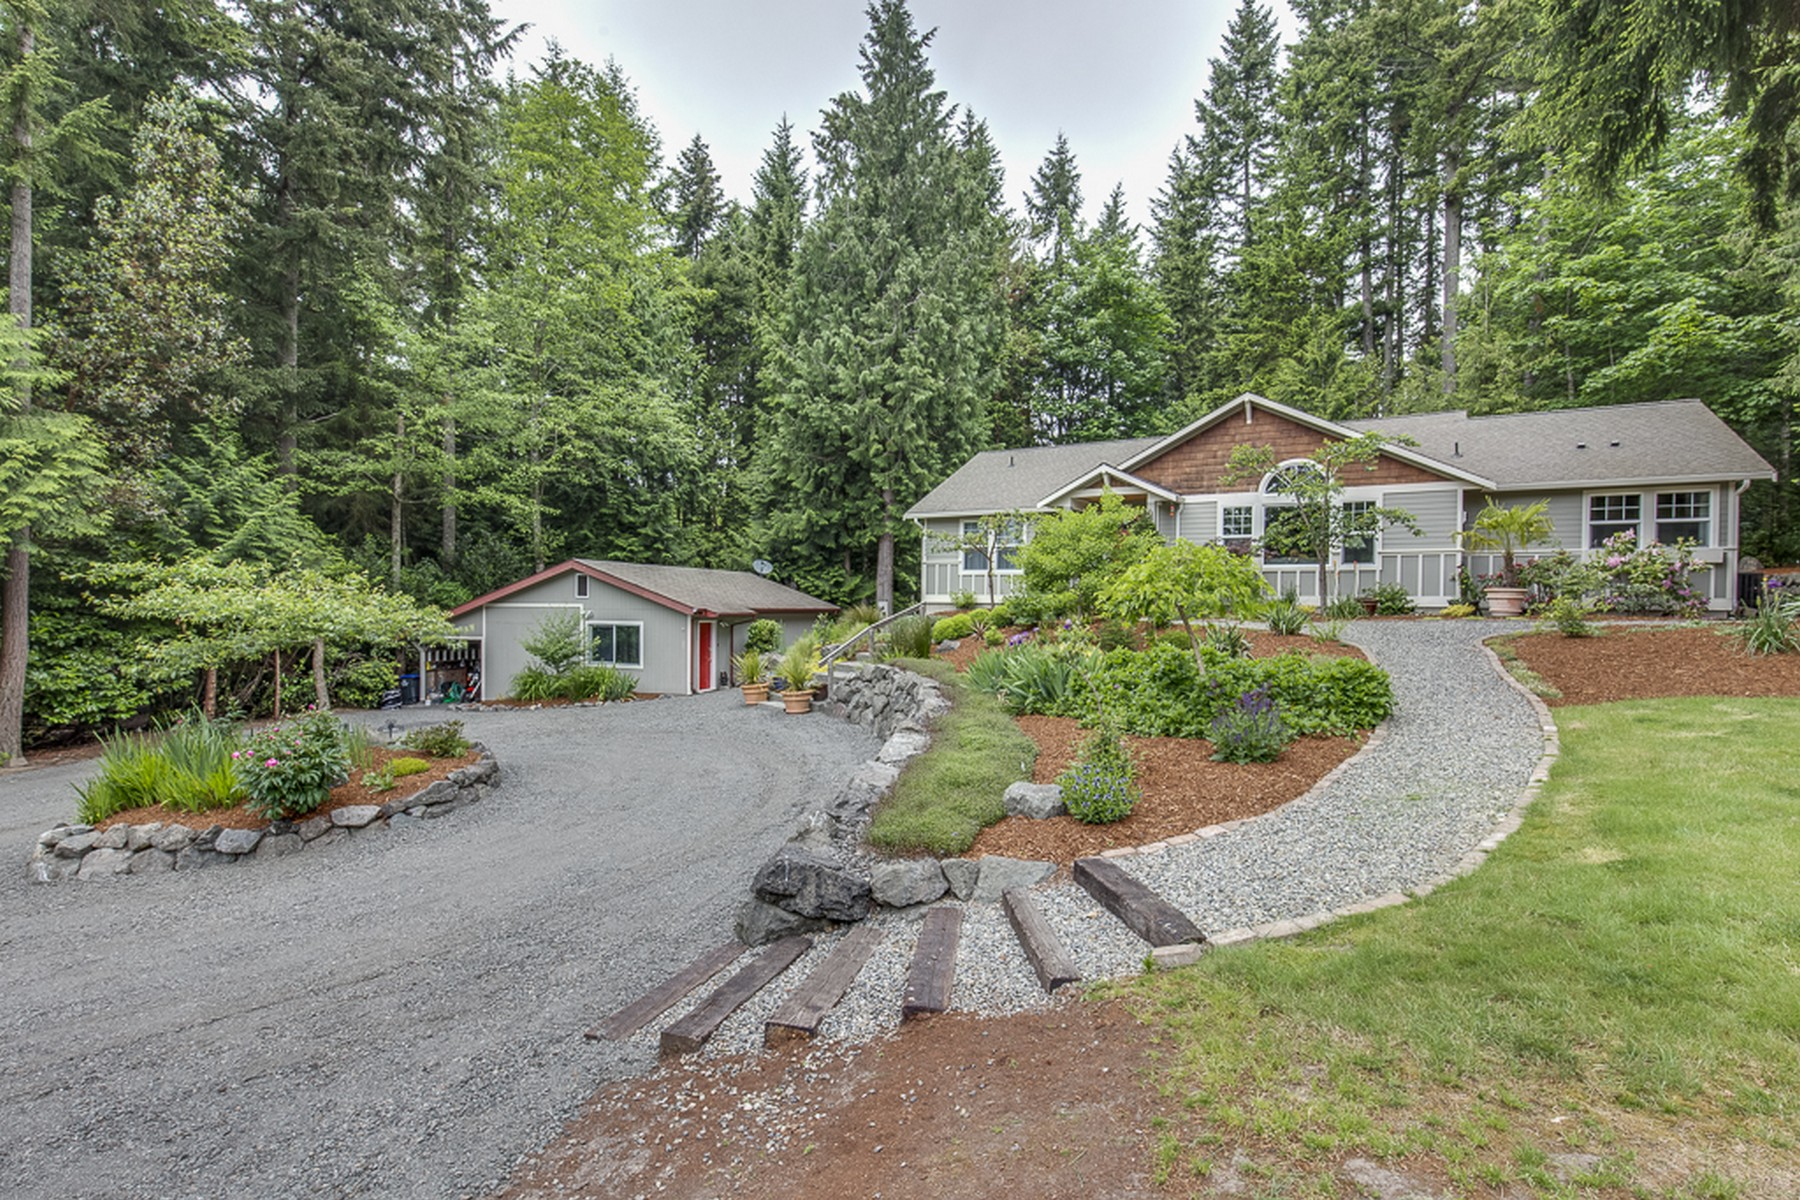 Single Family Home for Sale at Baker HIll Rambler 8280 Baker HIll Road NE Bainbridge Island, Washington 98110 United States